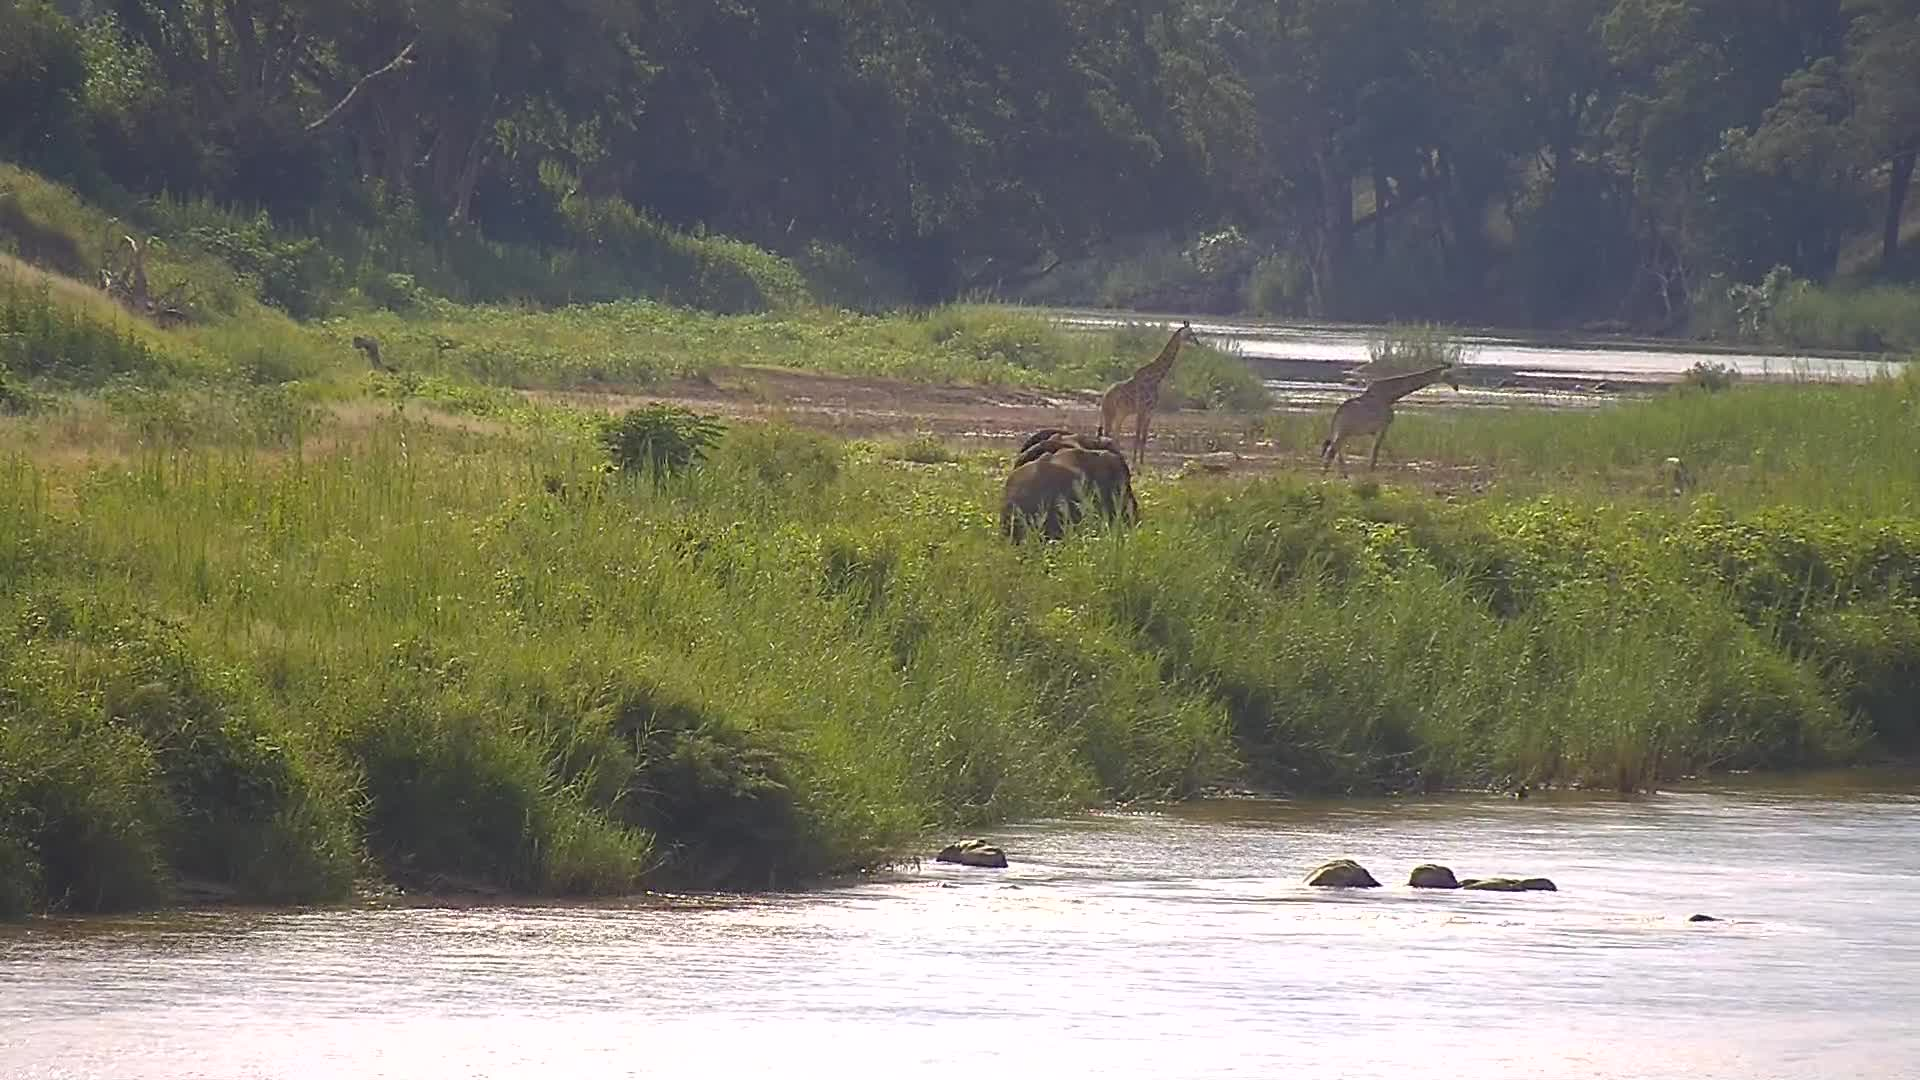 VIDEO: Elephants and Giraffes